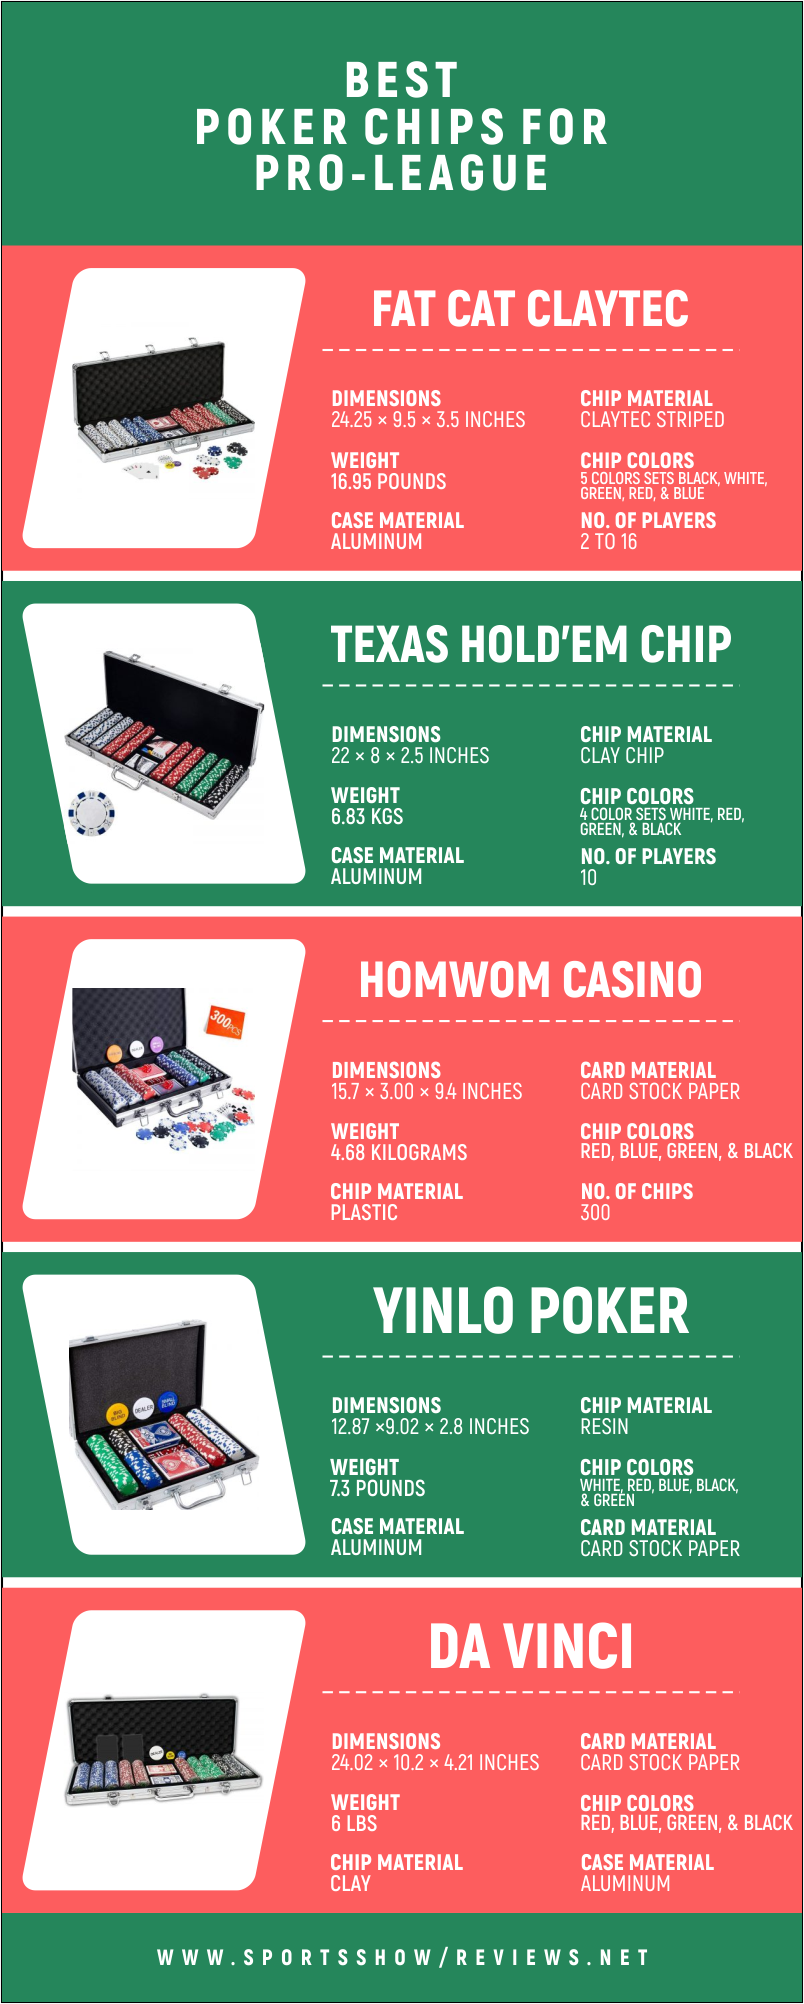 Poker Chips for Pro-League